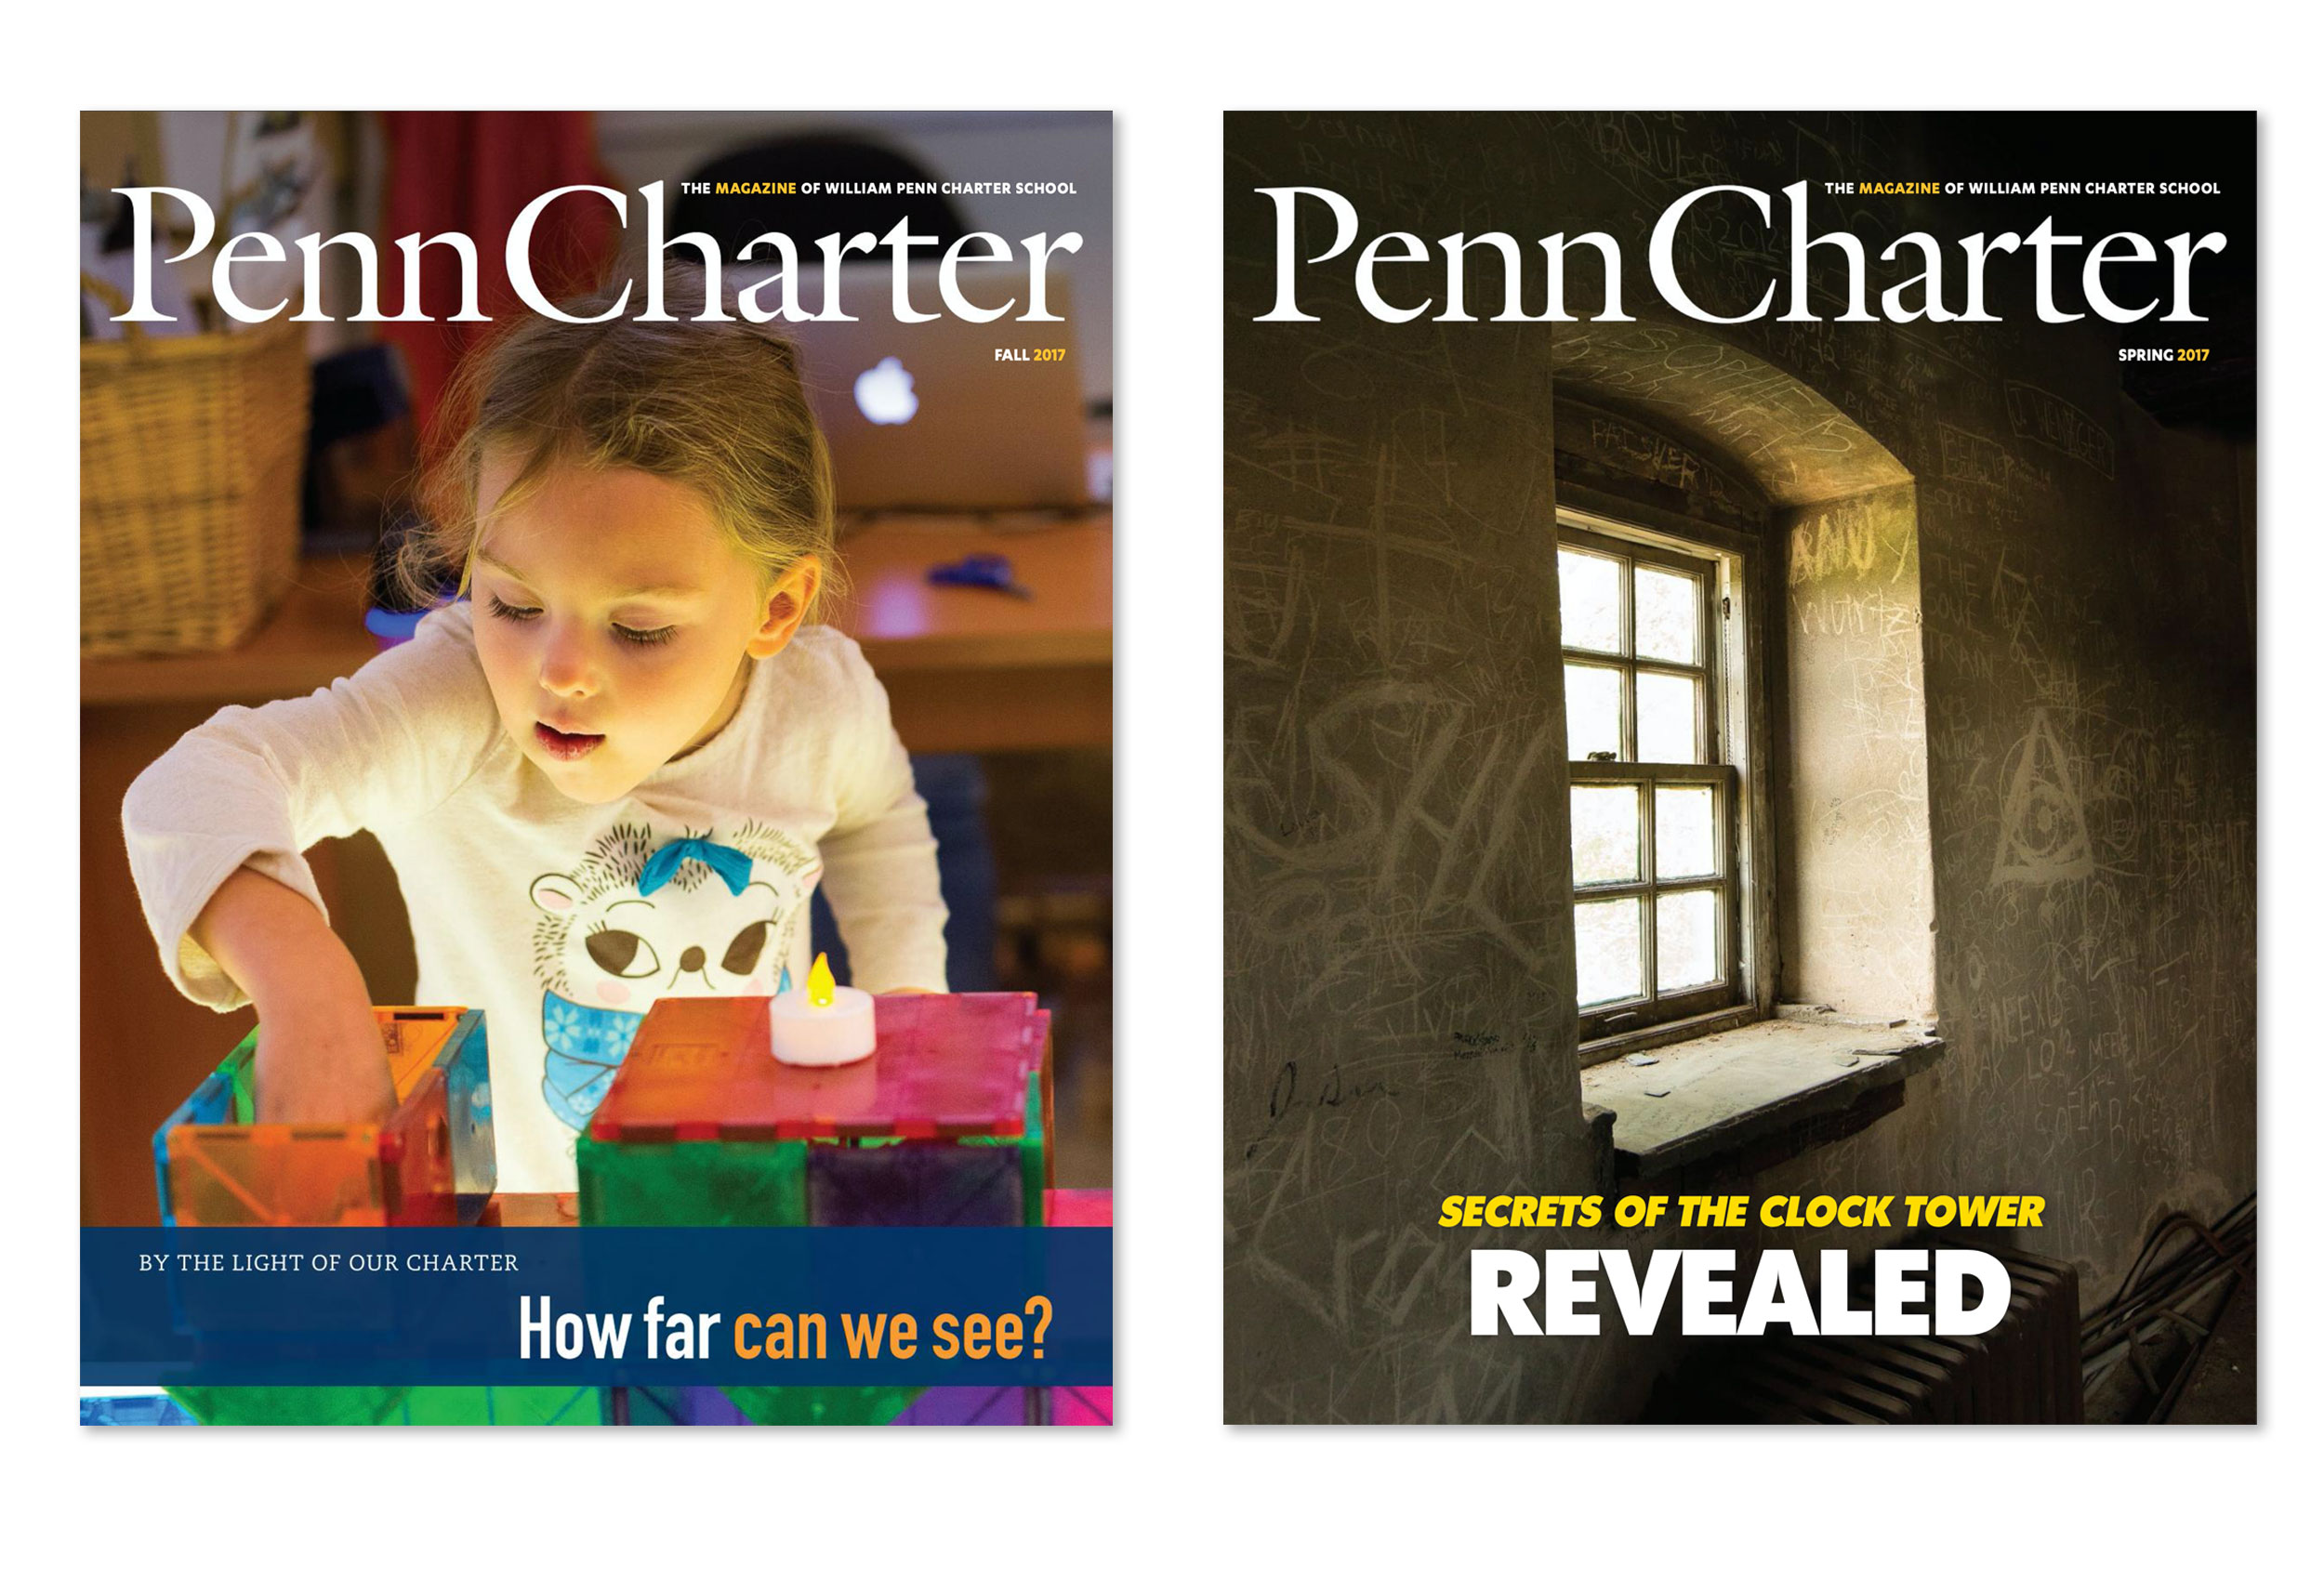 William Penn Charter School, Philadelphia, Michael Branscom Photography.